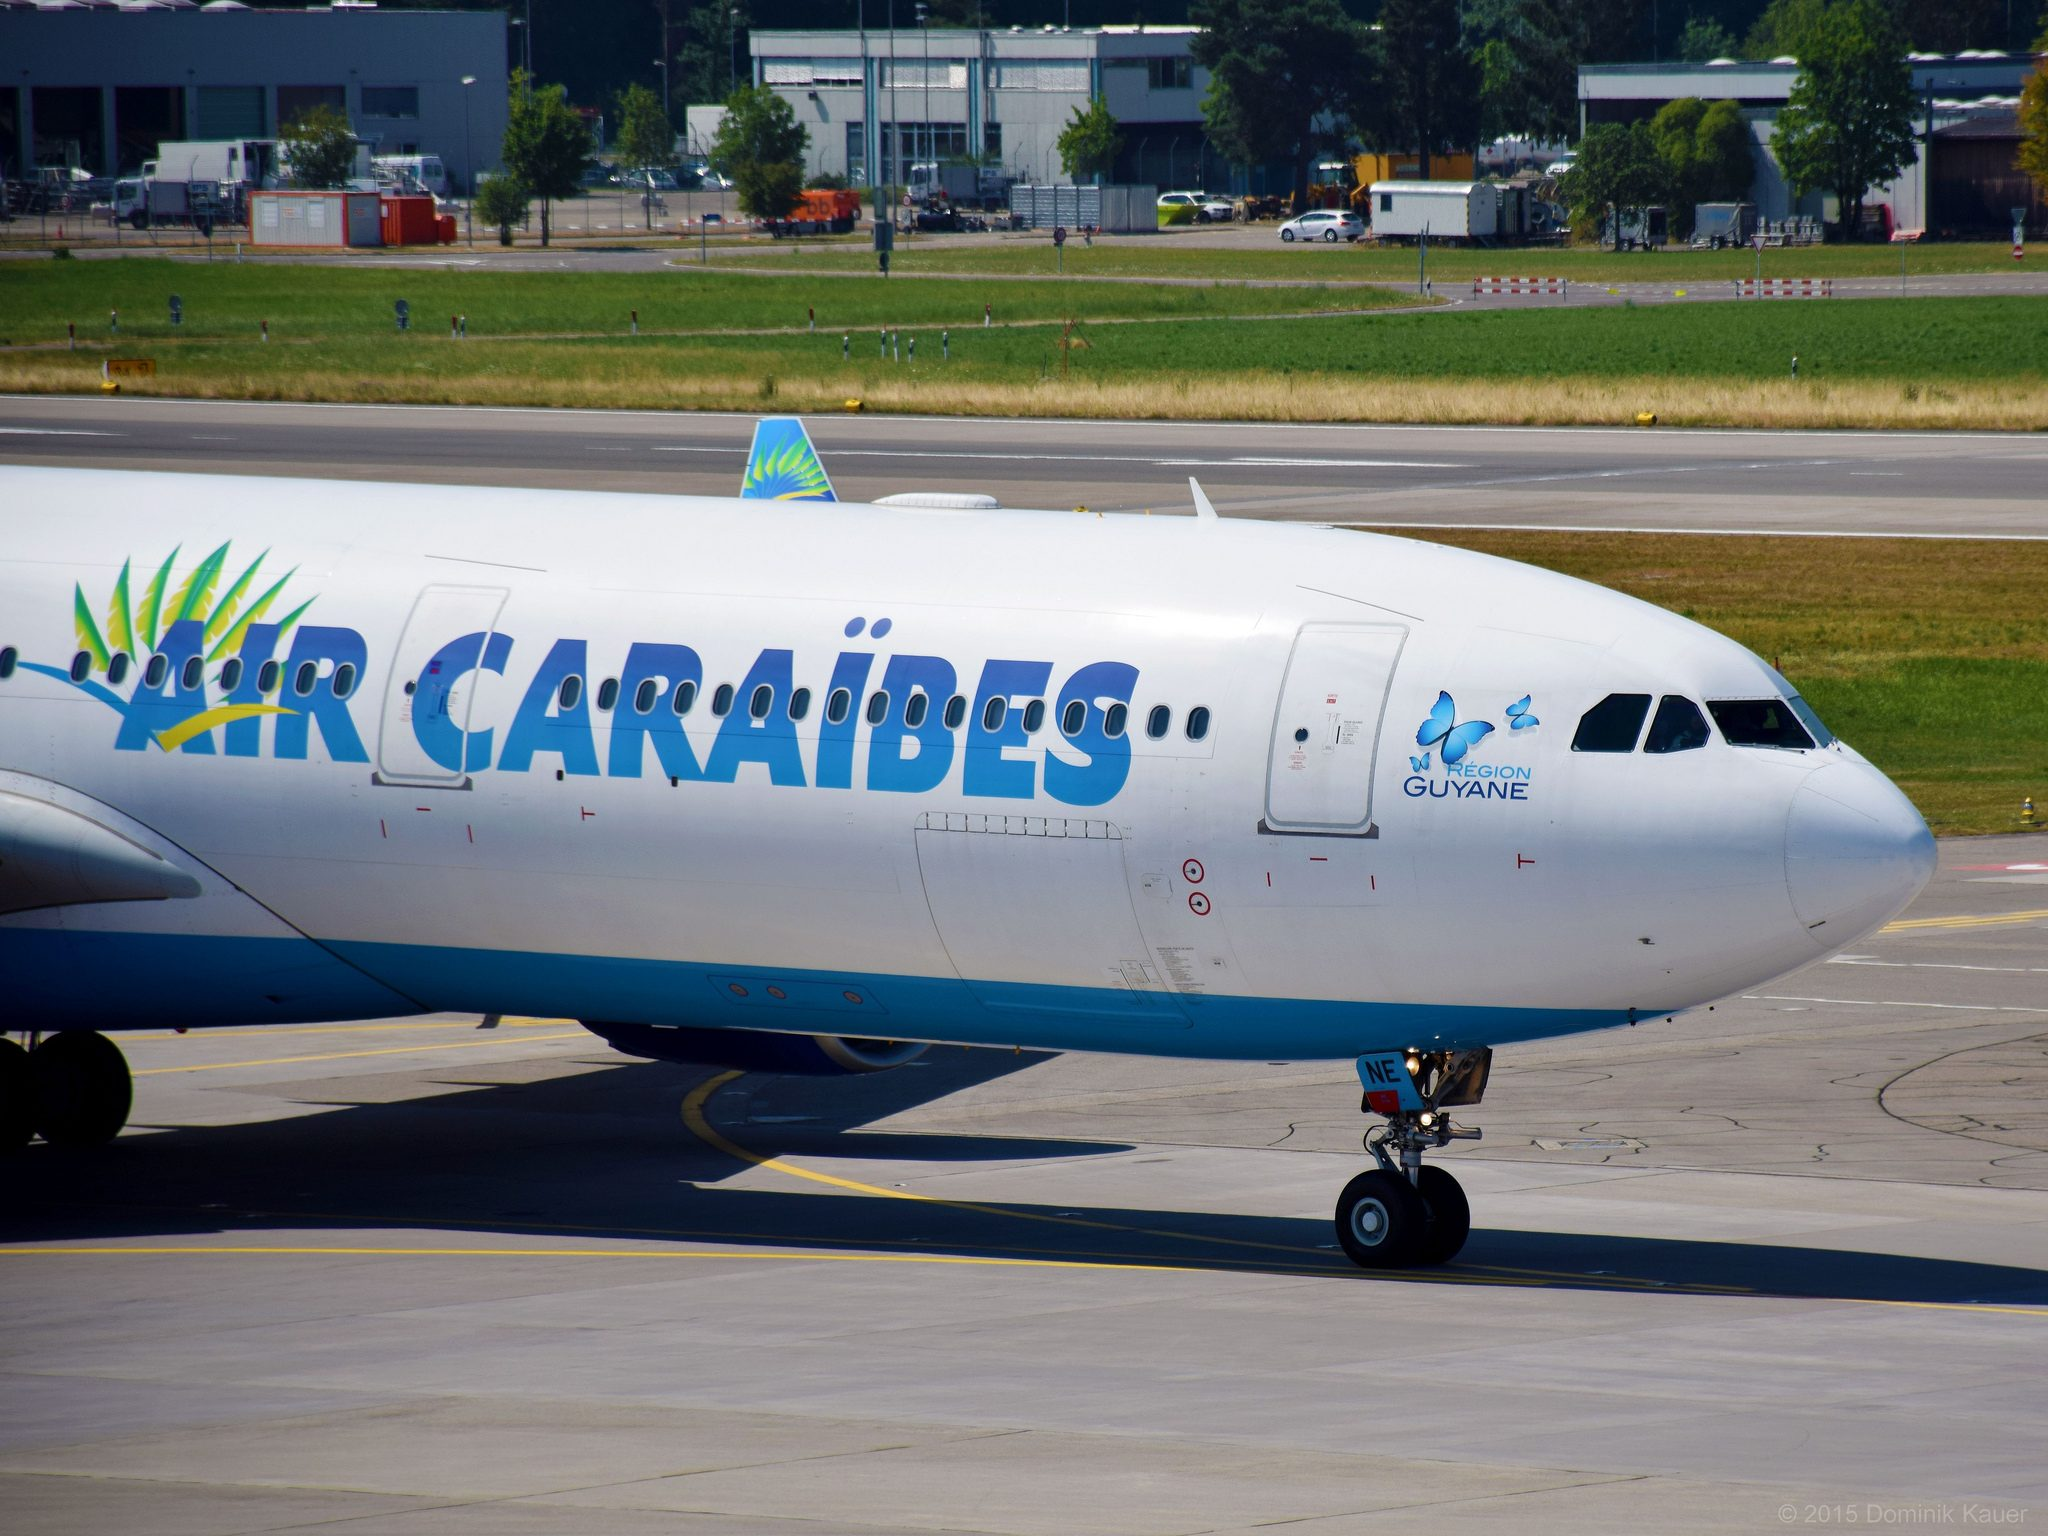 Air Caraïbes Airbus A330-323E | F-OONE (ZRH) par dxme sous (CC BY-SA 2.0) https://www.flickr.com/photos/_dxme/20029299123/ https://creativecommons.org/licenses/by-sa/2.0/